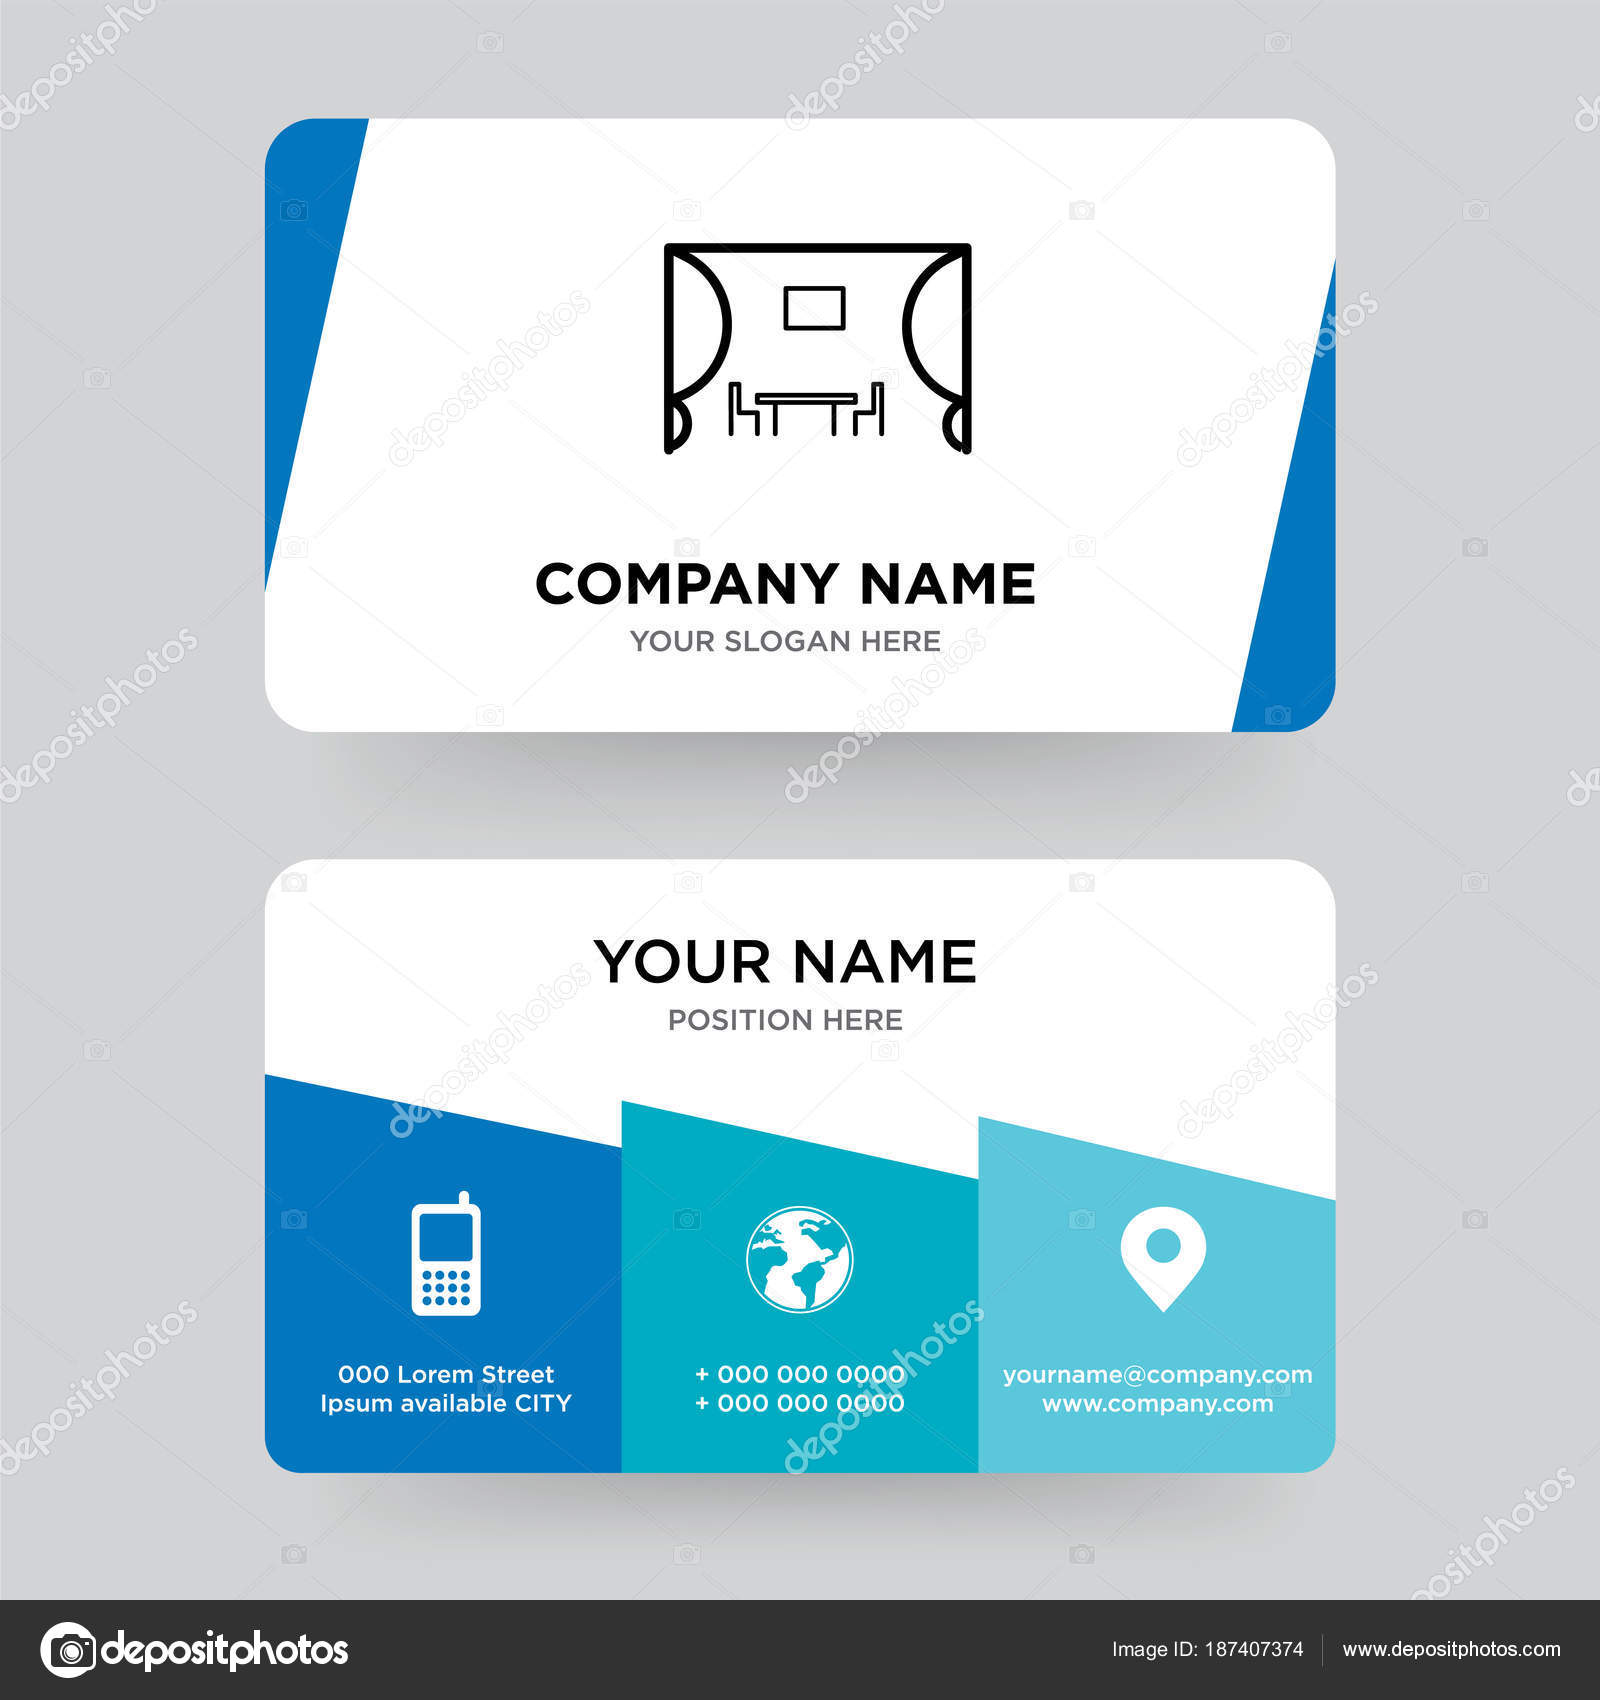 Kitchen Business Card Design Template Visiting For Your Company